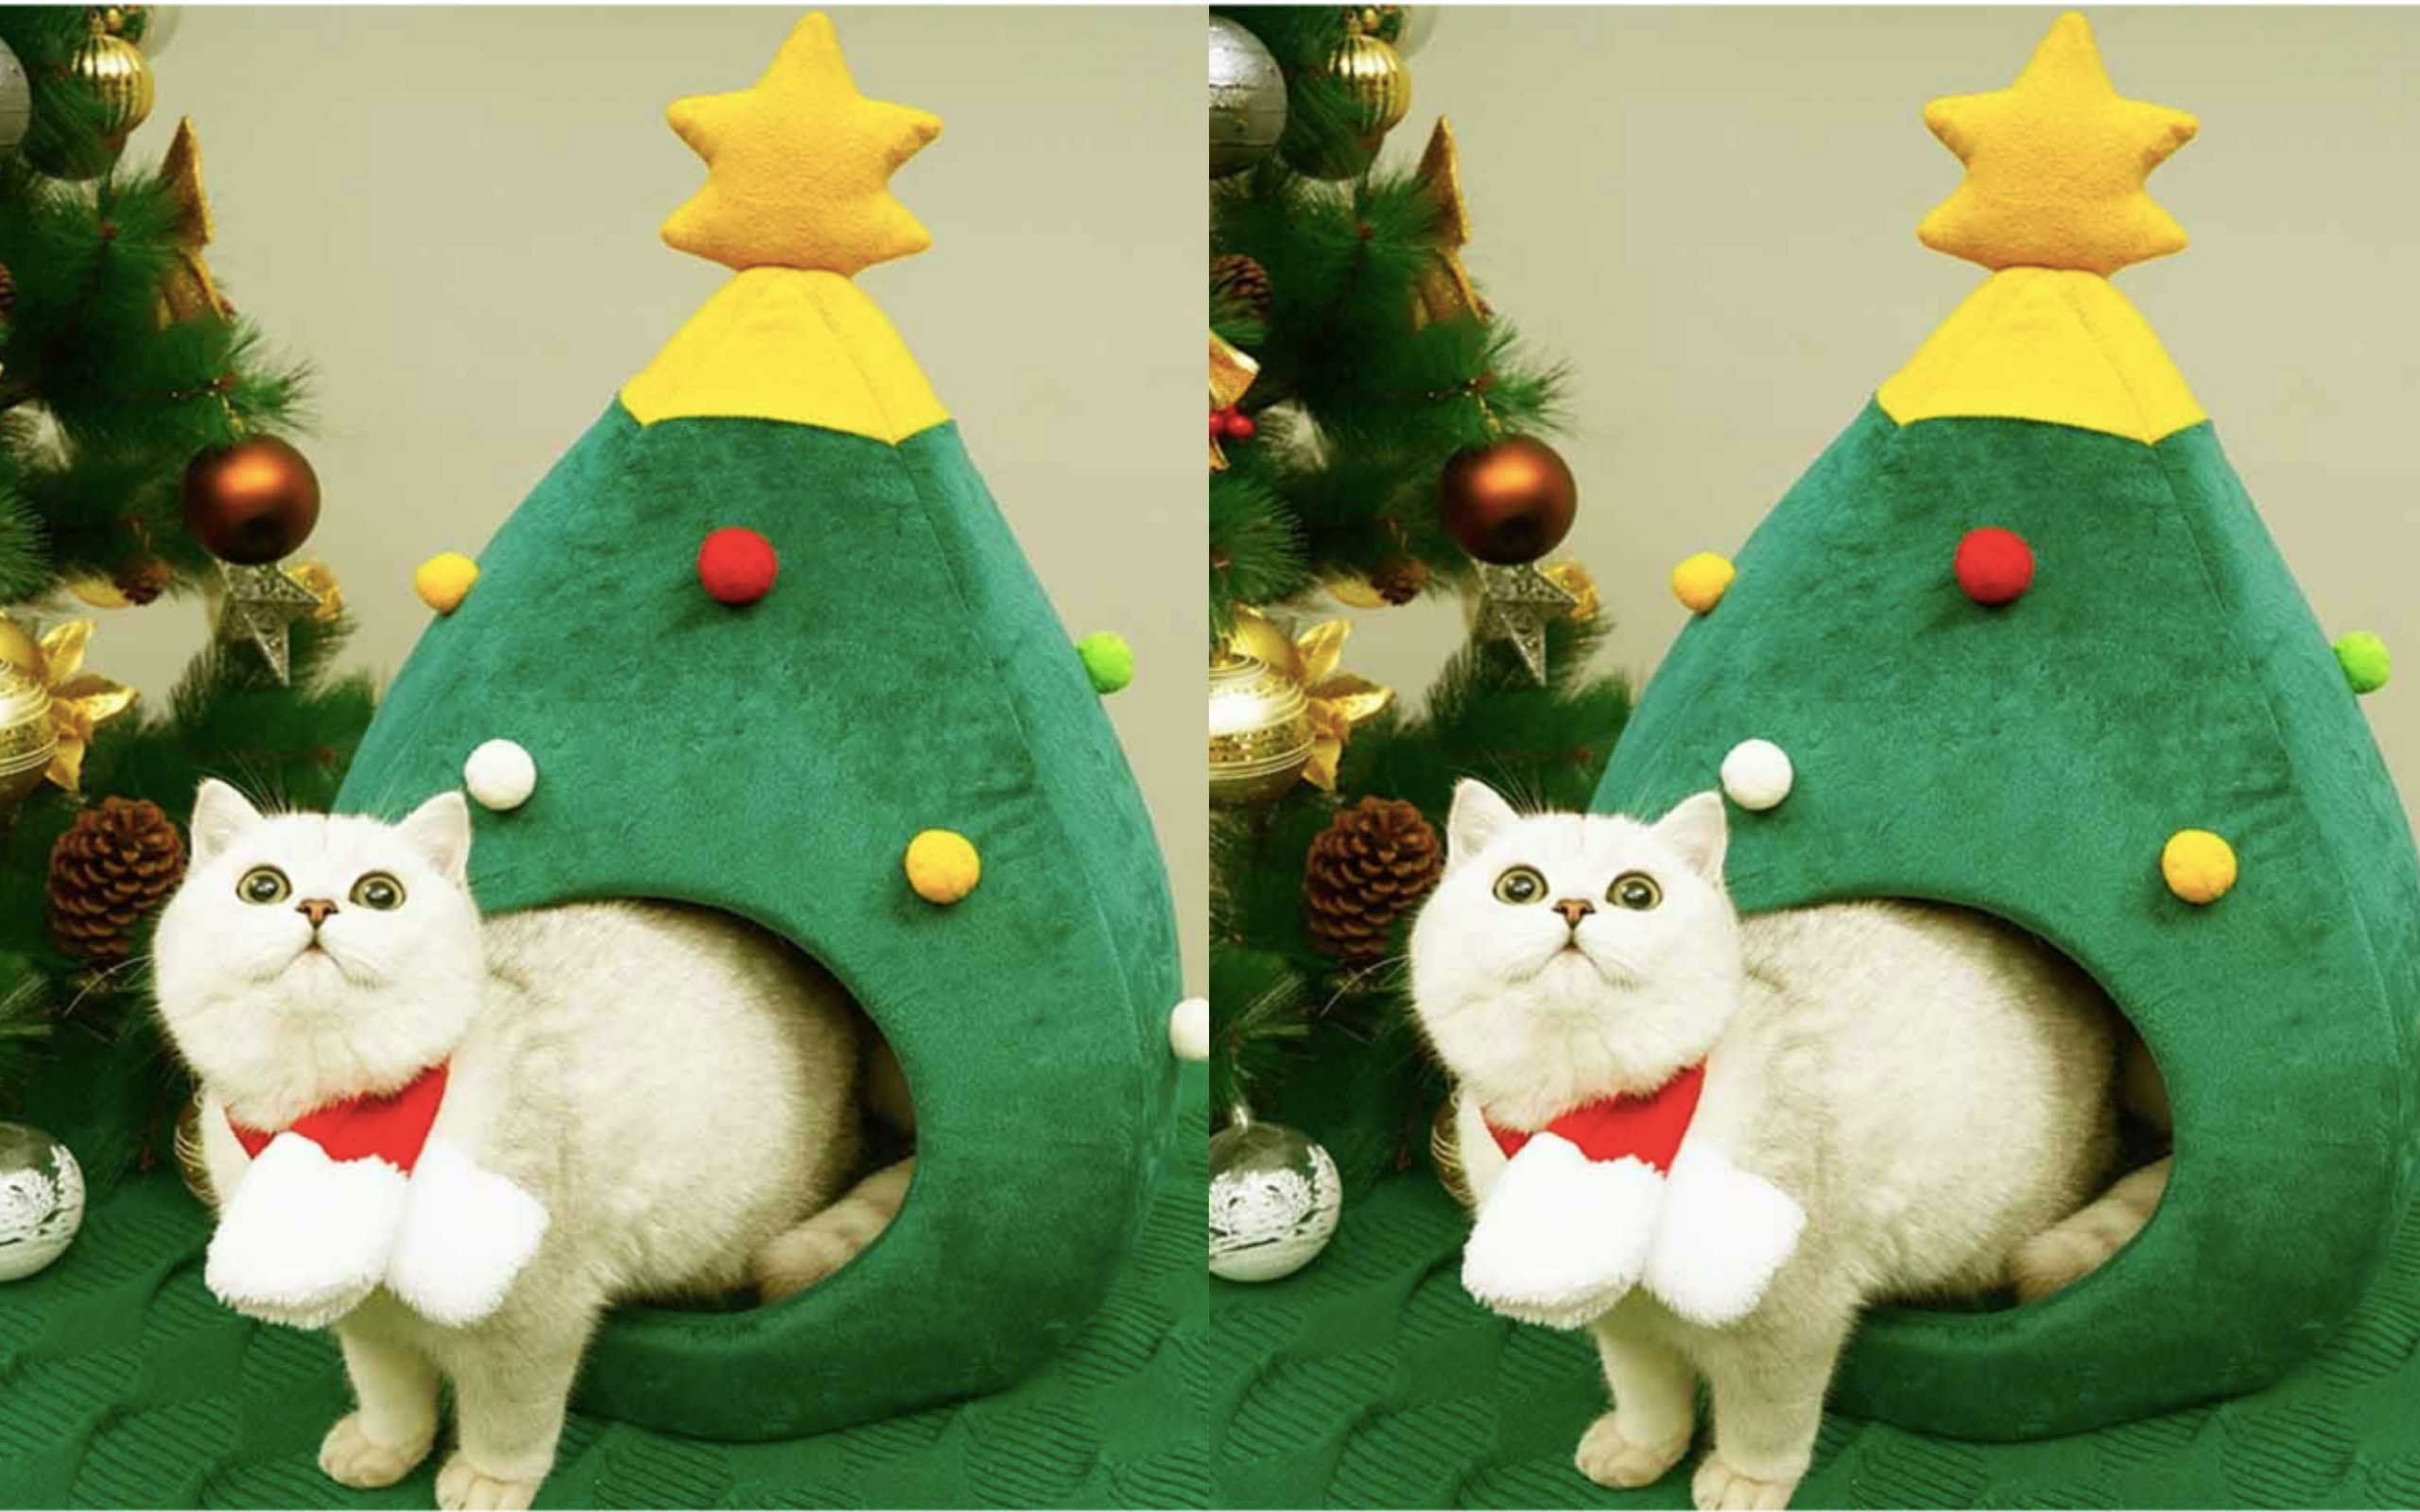 This Christmas Tree Pet House Is A Winter Wonderland For Cats